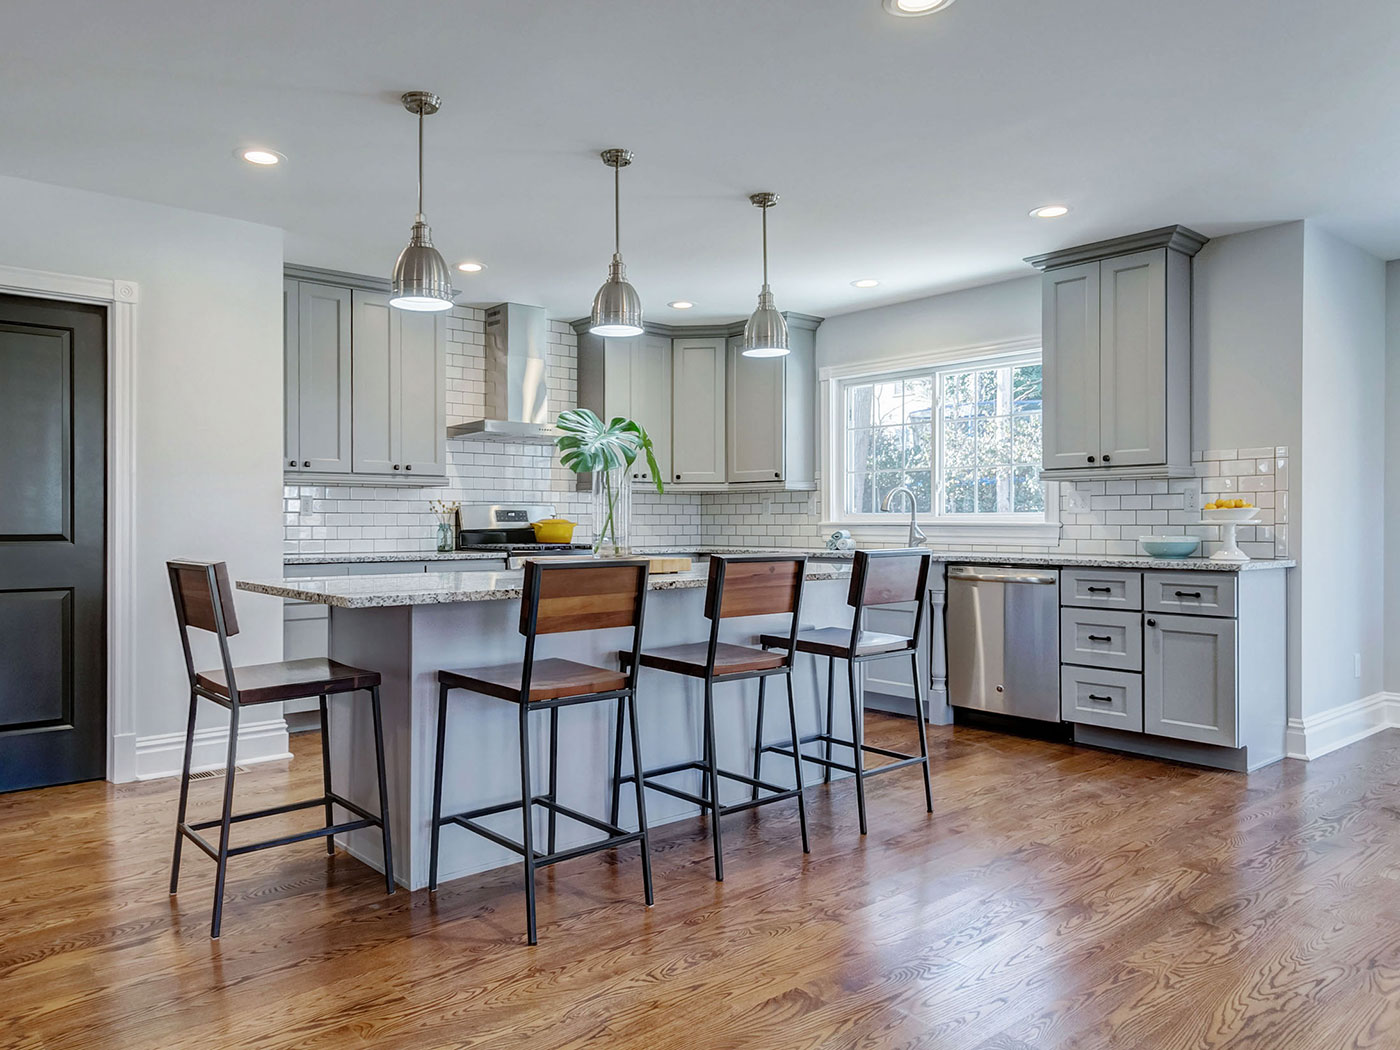 Standard Kitchen Cabinets Brooklyn Gray - Craftworks Custom Cabinetry - Rochester, NY